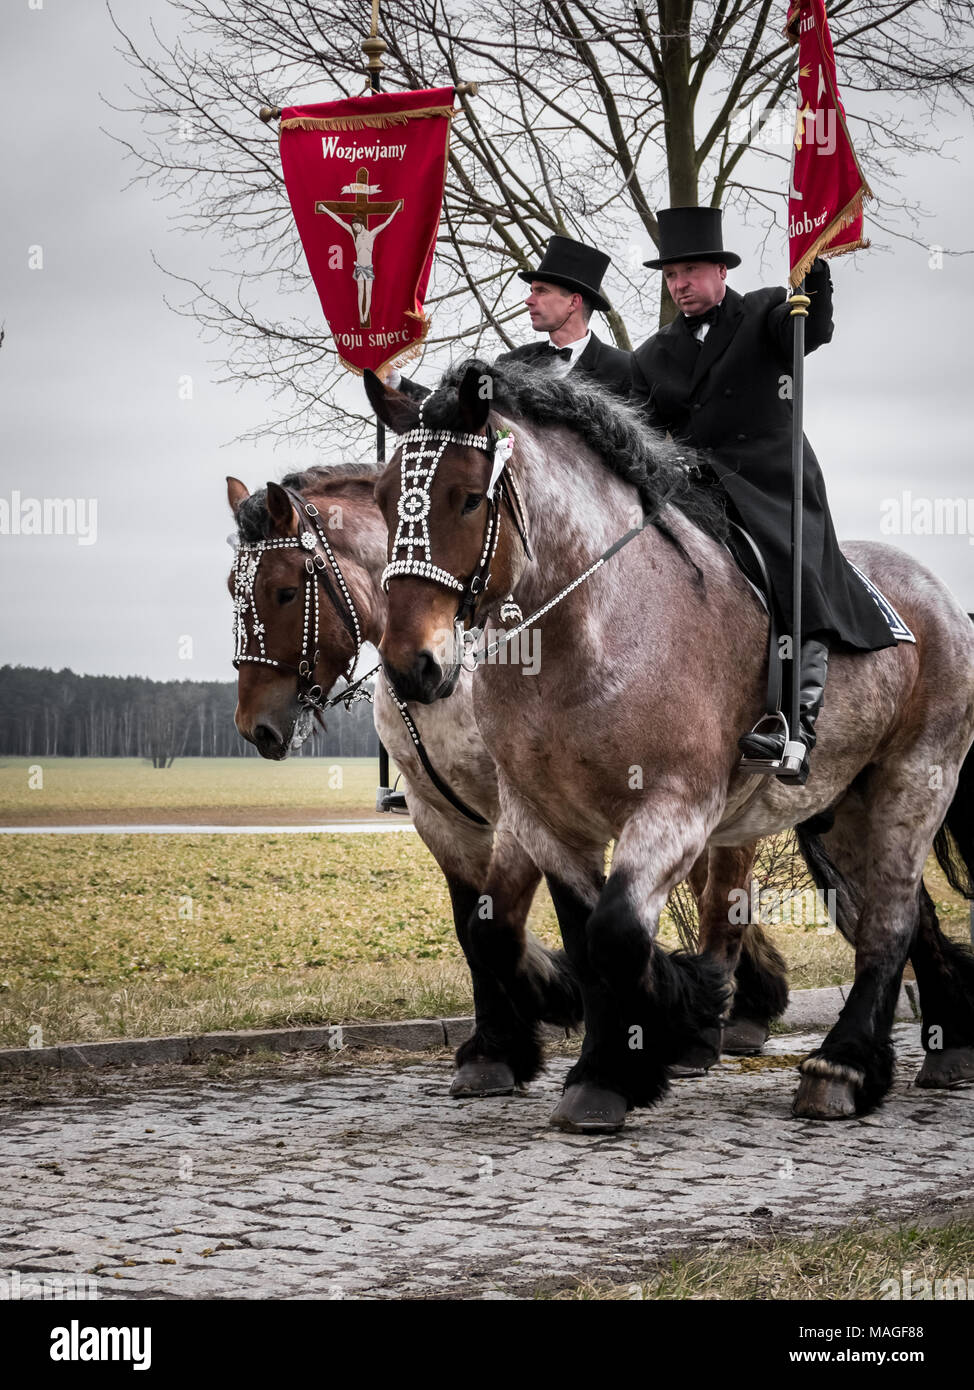 Lausitz Germany 1st Apr 2018 Easter Riders From Wittichenau And Their Beautiful Draft Horses Carrying Banners Side Profile Sorbian Easter Procession Osterreiten Credit Krino Alamy Live News Stock Photo Alamy